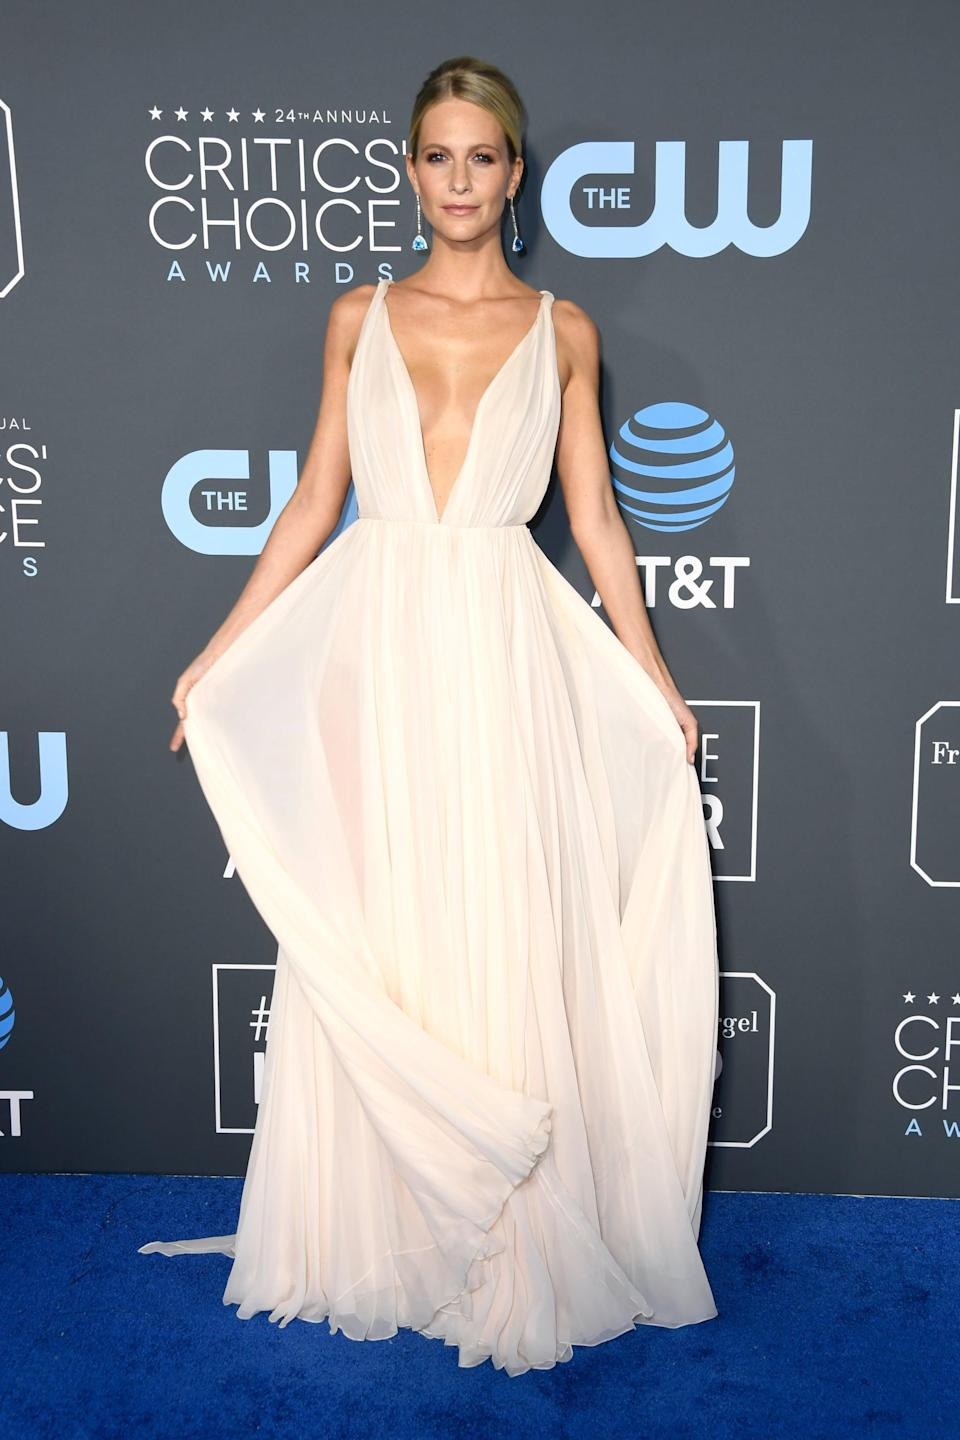 <p>Poppy Delevingne wearing a flowy gown with Kallati earrings and Christian Louboutin heels.</p>